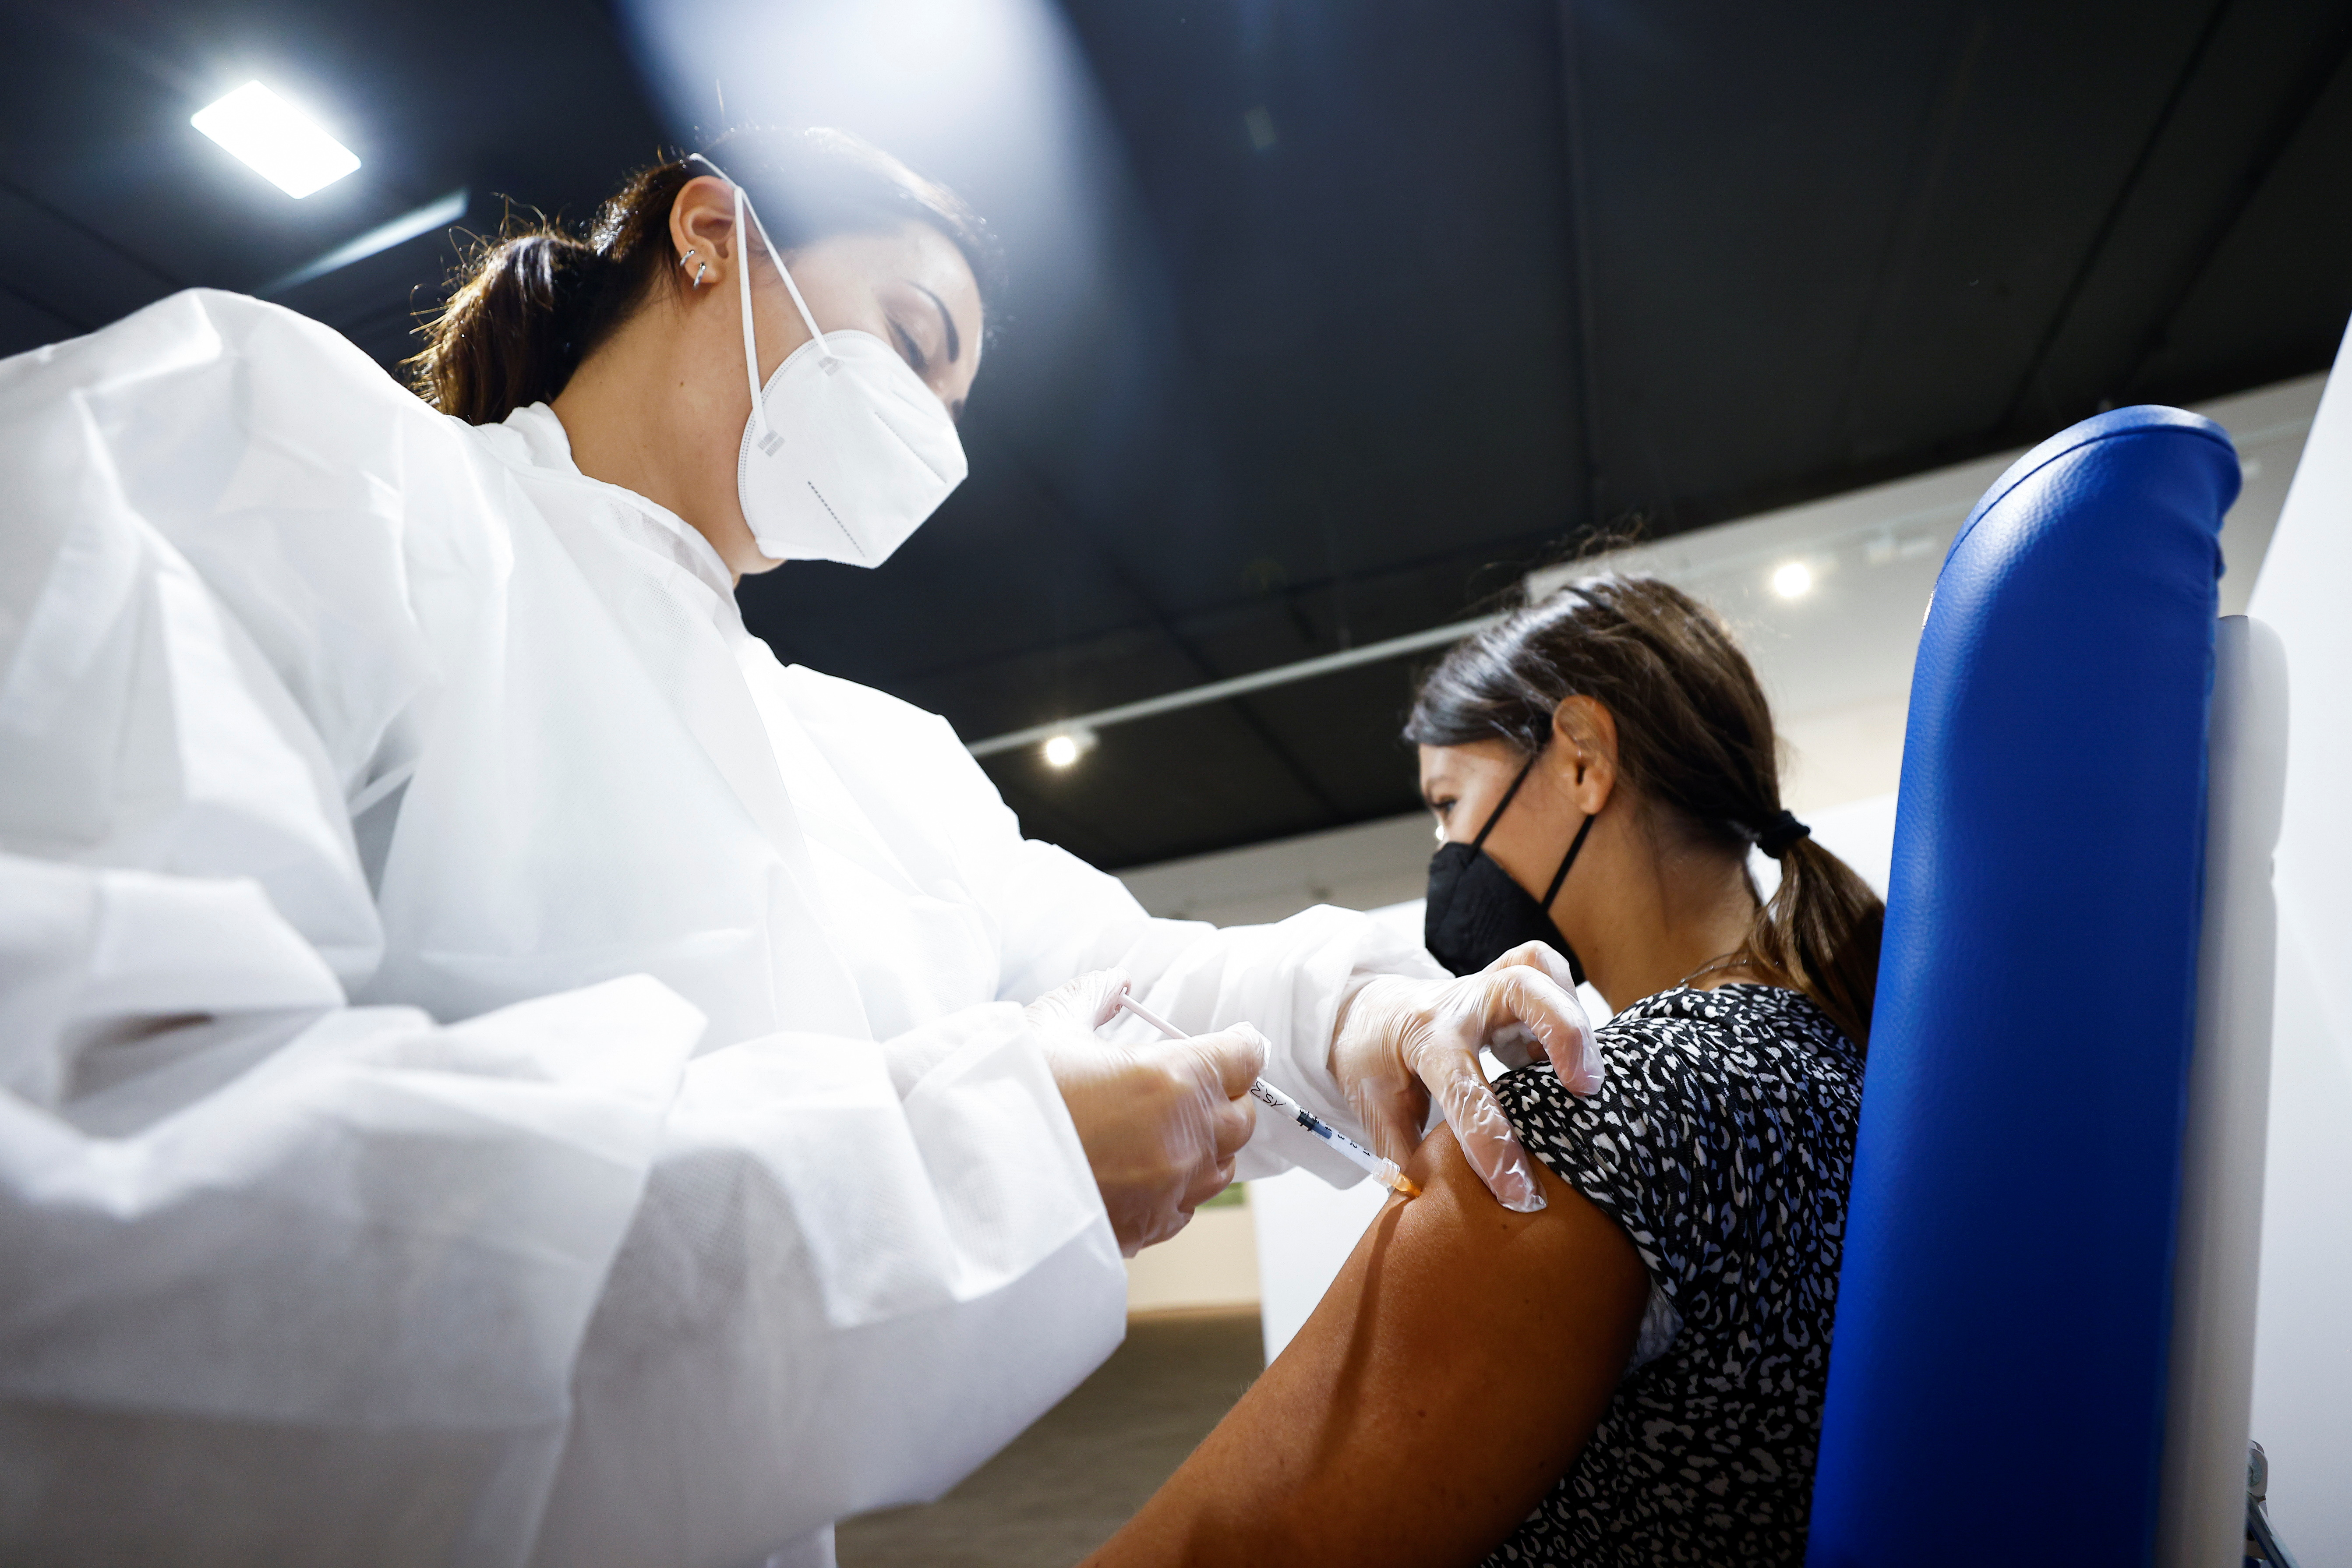 A woman receives a dose of the Moderna vaccine against the coronavirus disease (COVID-19), a day before the wider Green Pass restrictions, where Italians will need proof of immunity to access an array of services and leisure activities, come into force, at the Music Auditorium in Rome, Italy, August 5, 2021. REUTERS/Guglielmo Mangiapane